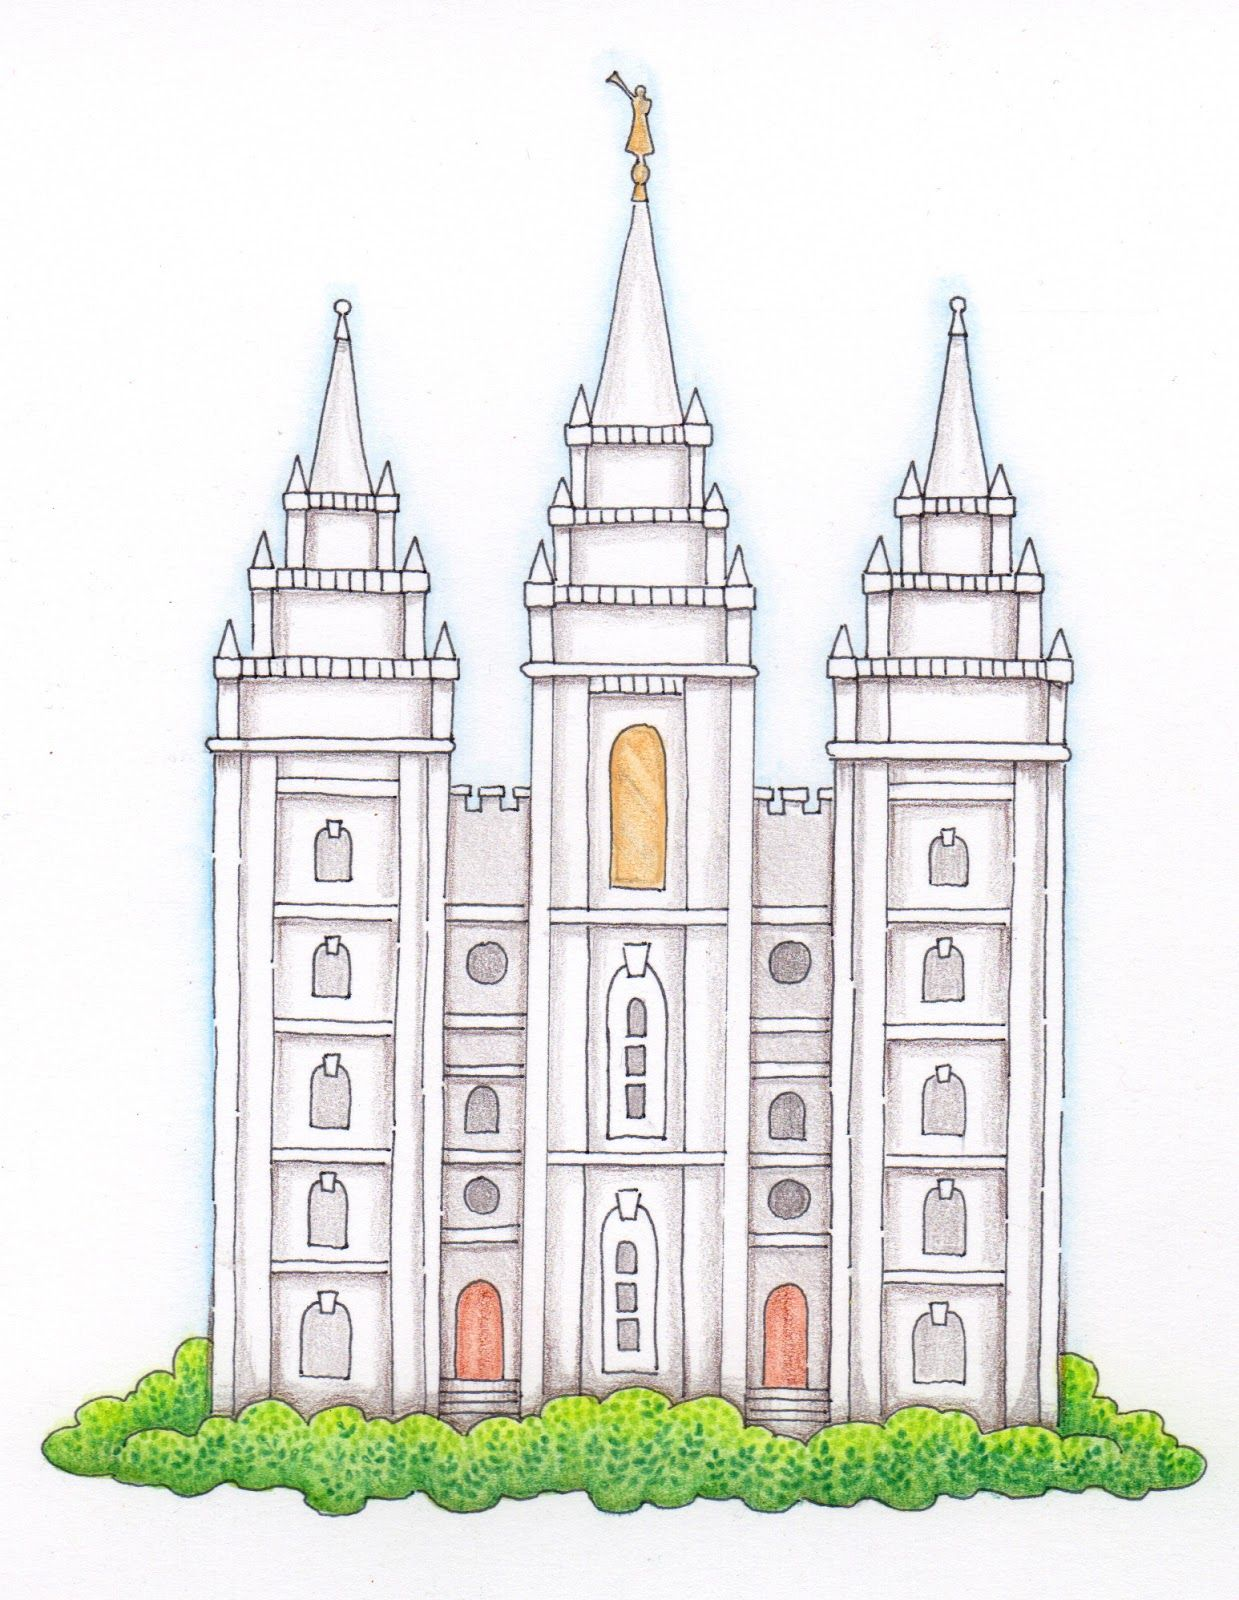 medium resolution of temple illustration click here to download temple illustration with i believe banner click here to download